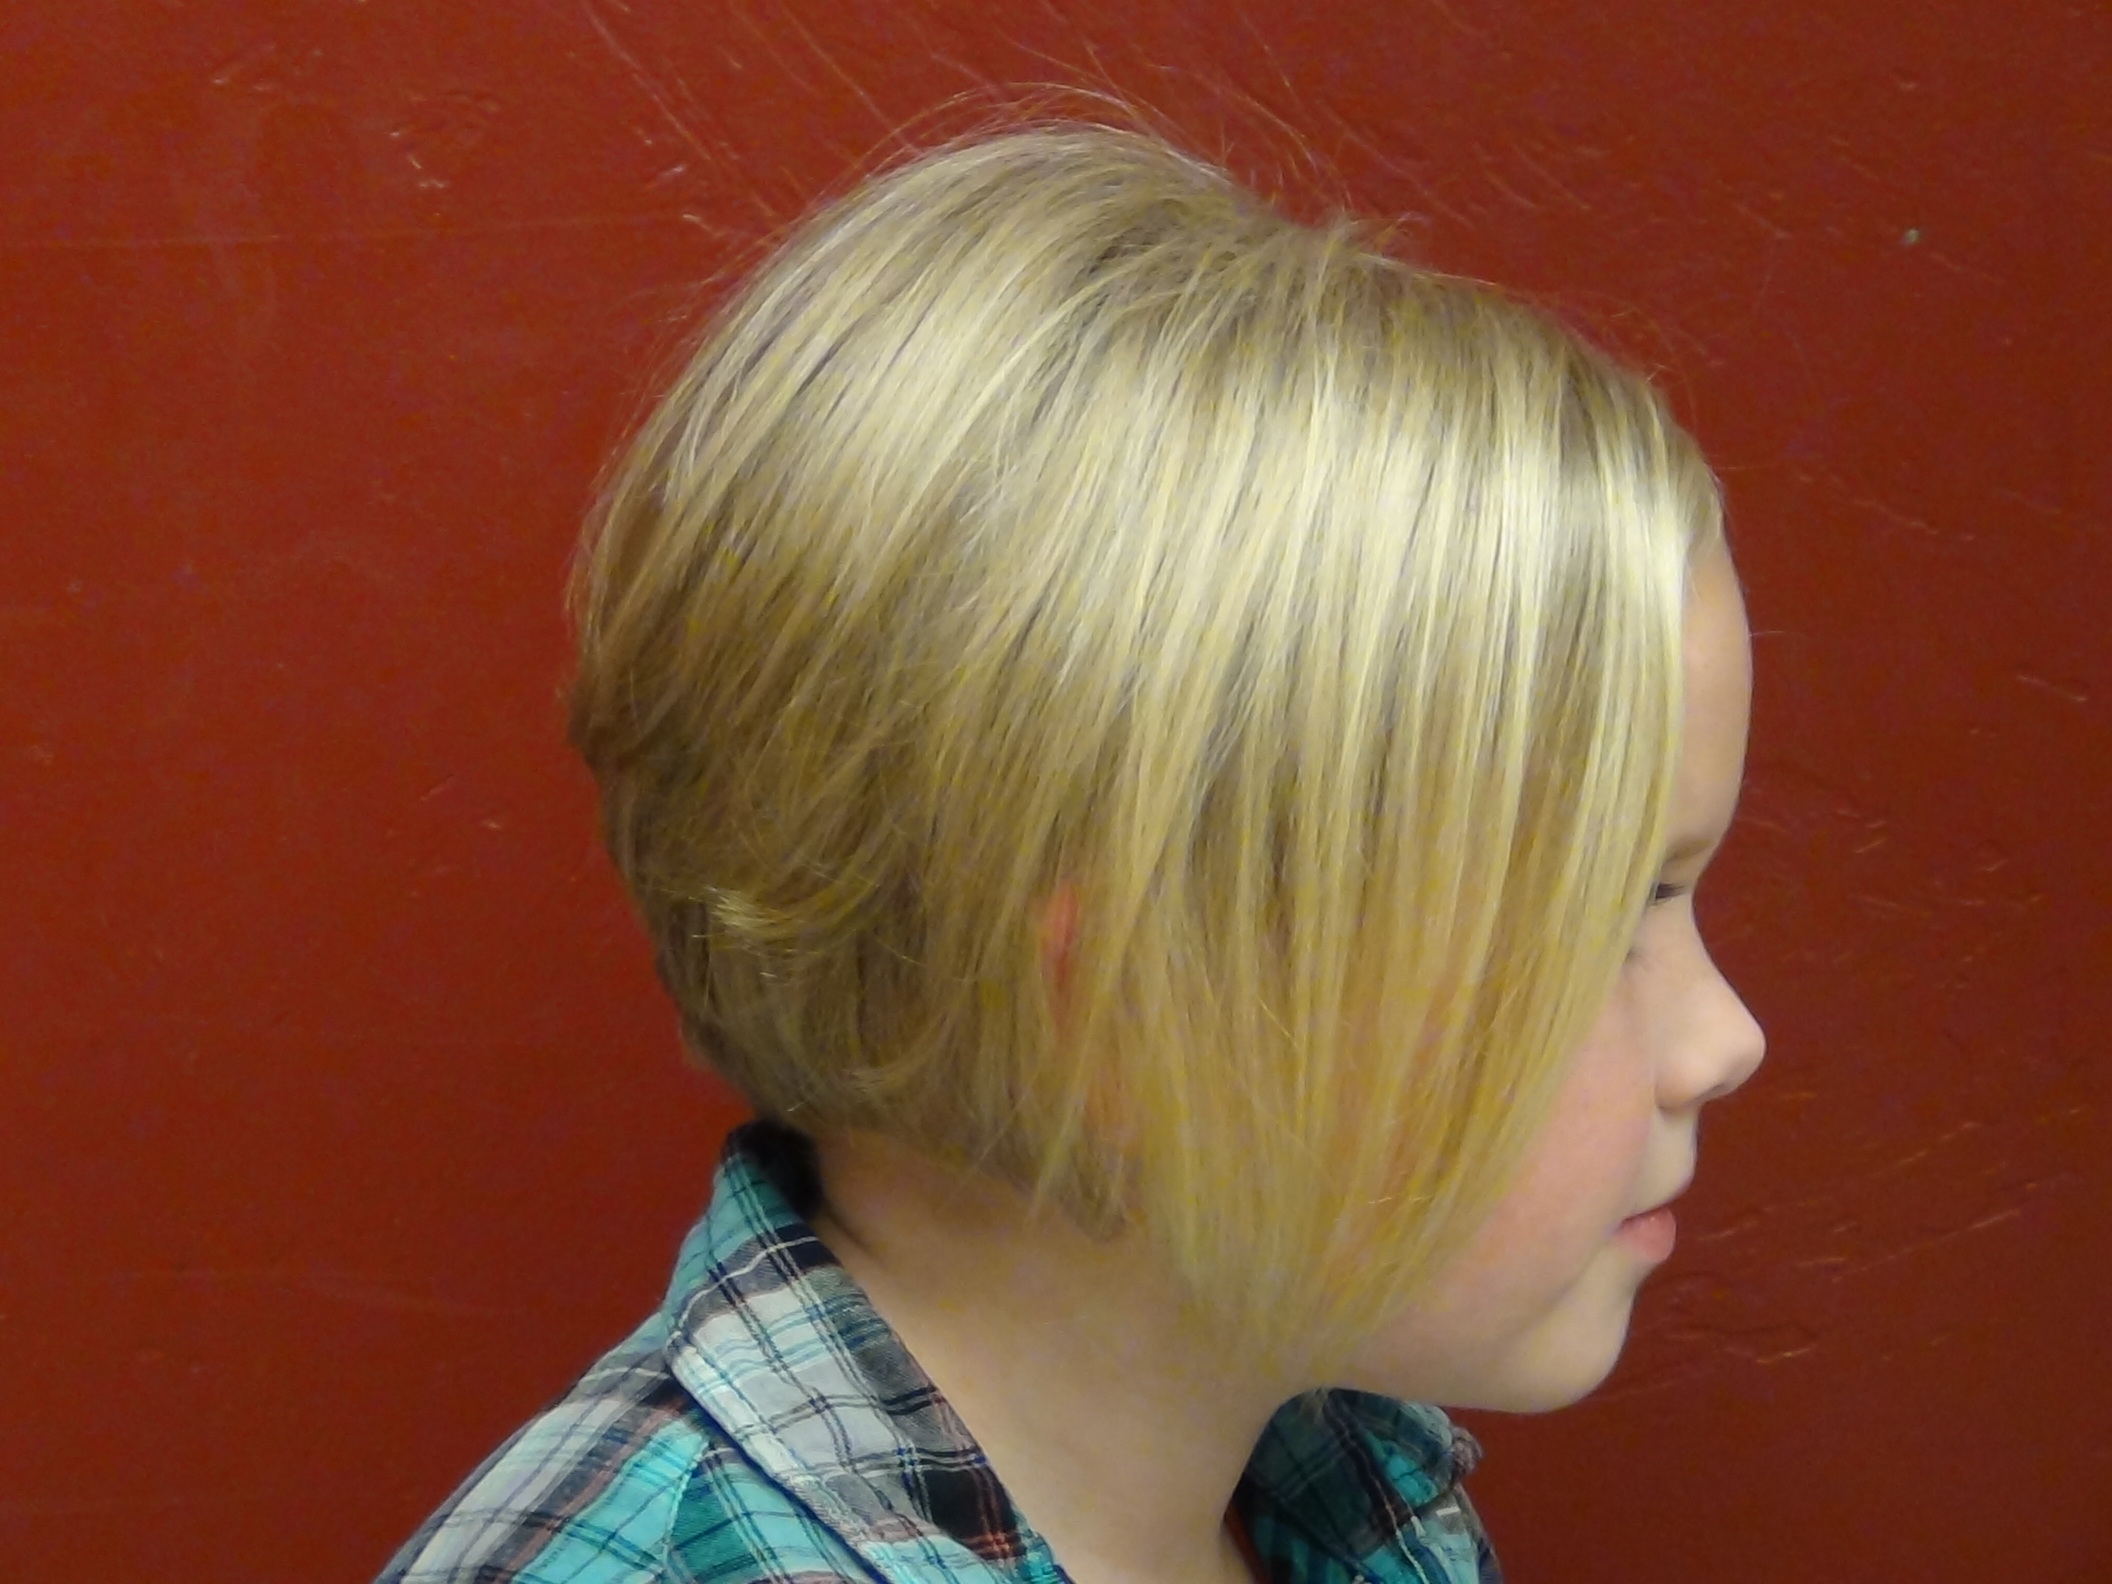 Bob Haircuts For Little Girls | Boys And (Girls Hairstyles) Within Little Girl Short Hairstyles Pictures (View 9 of 25)